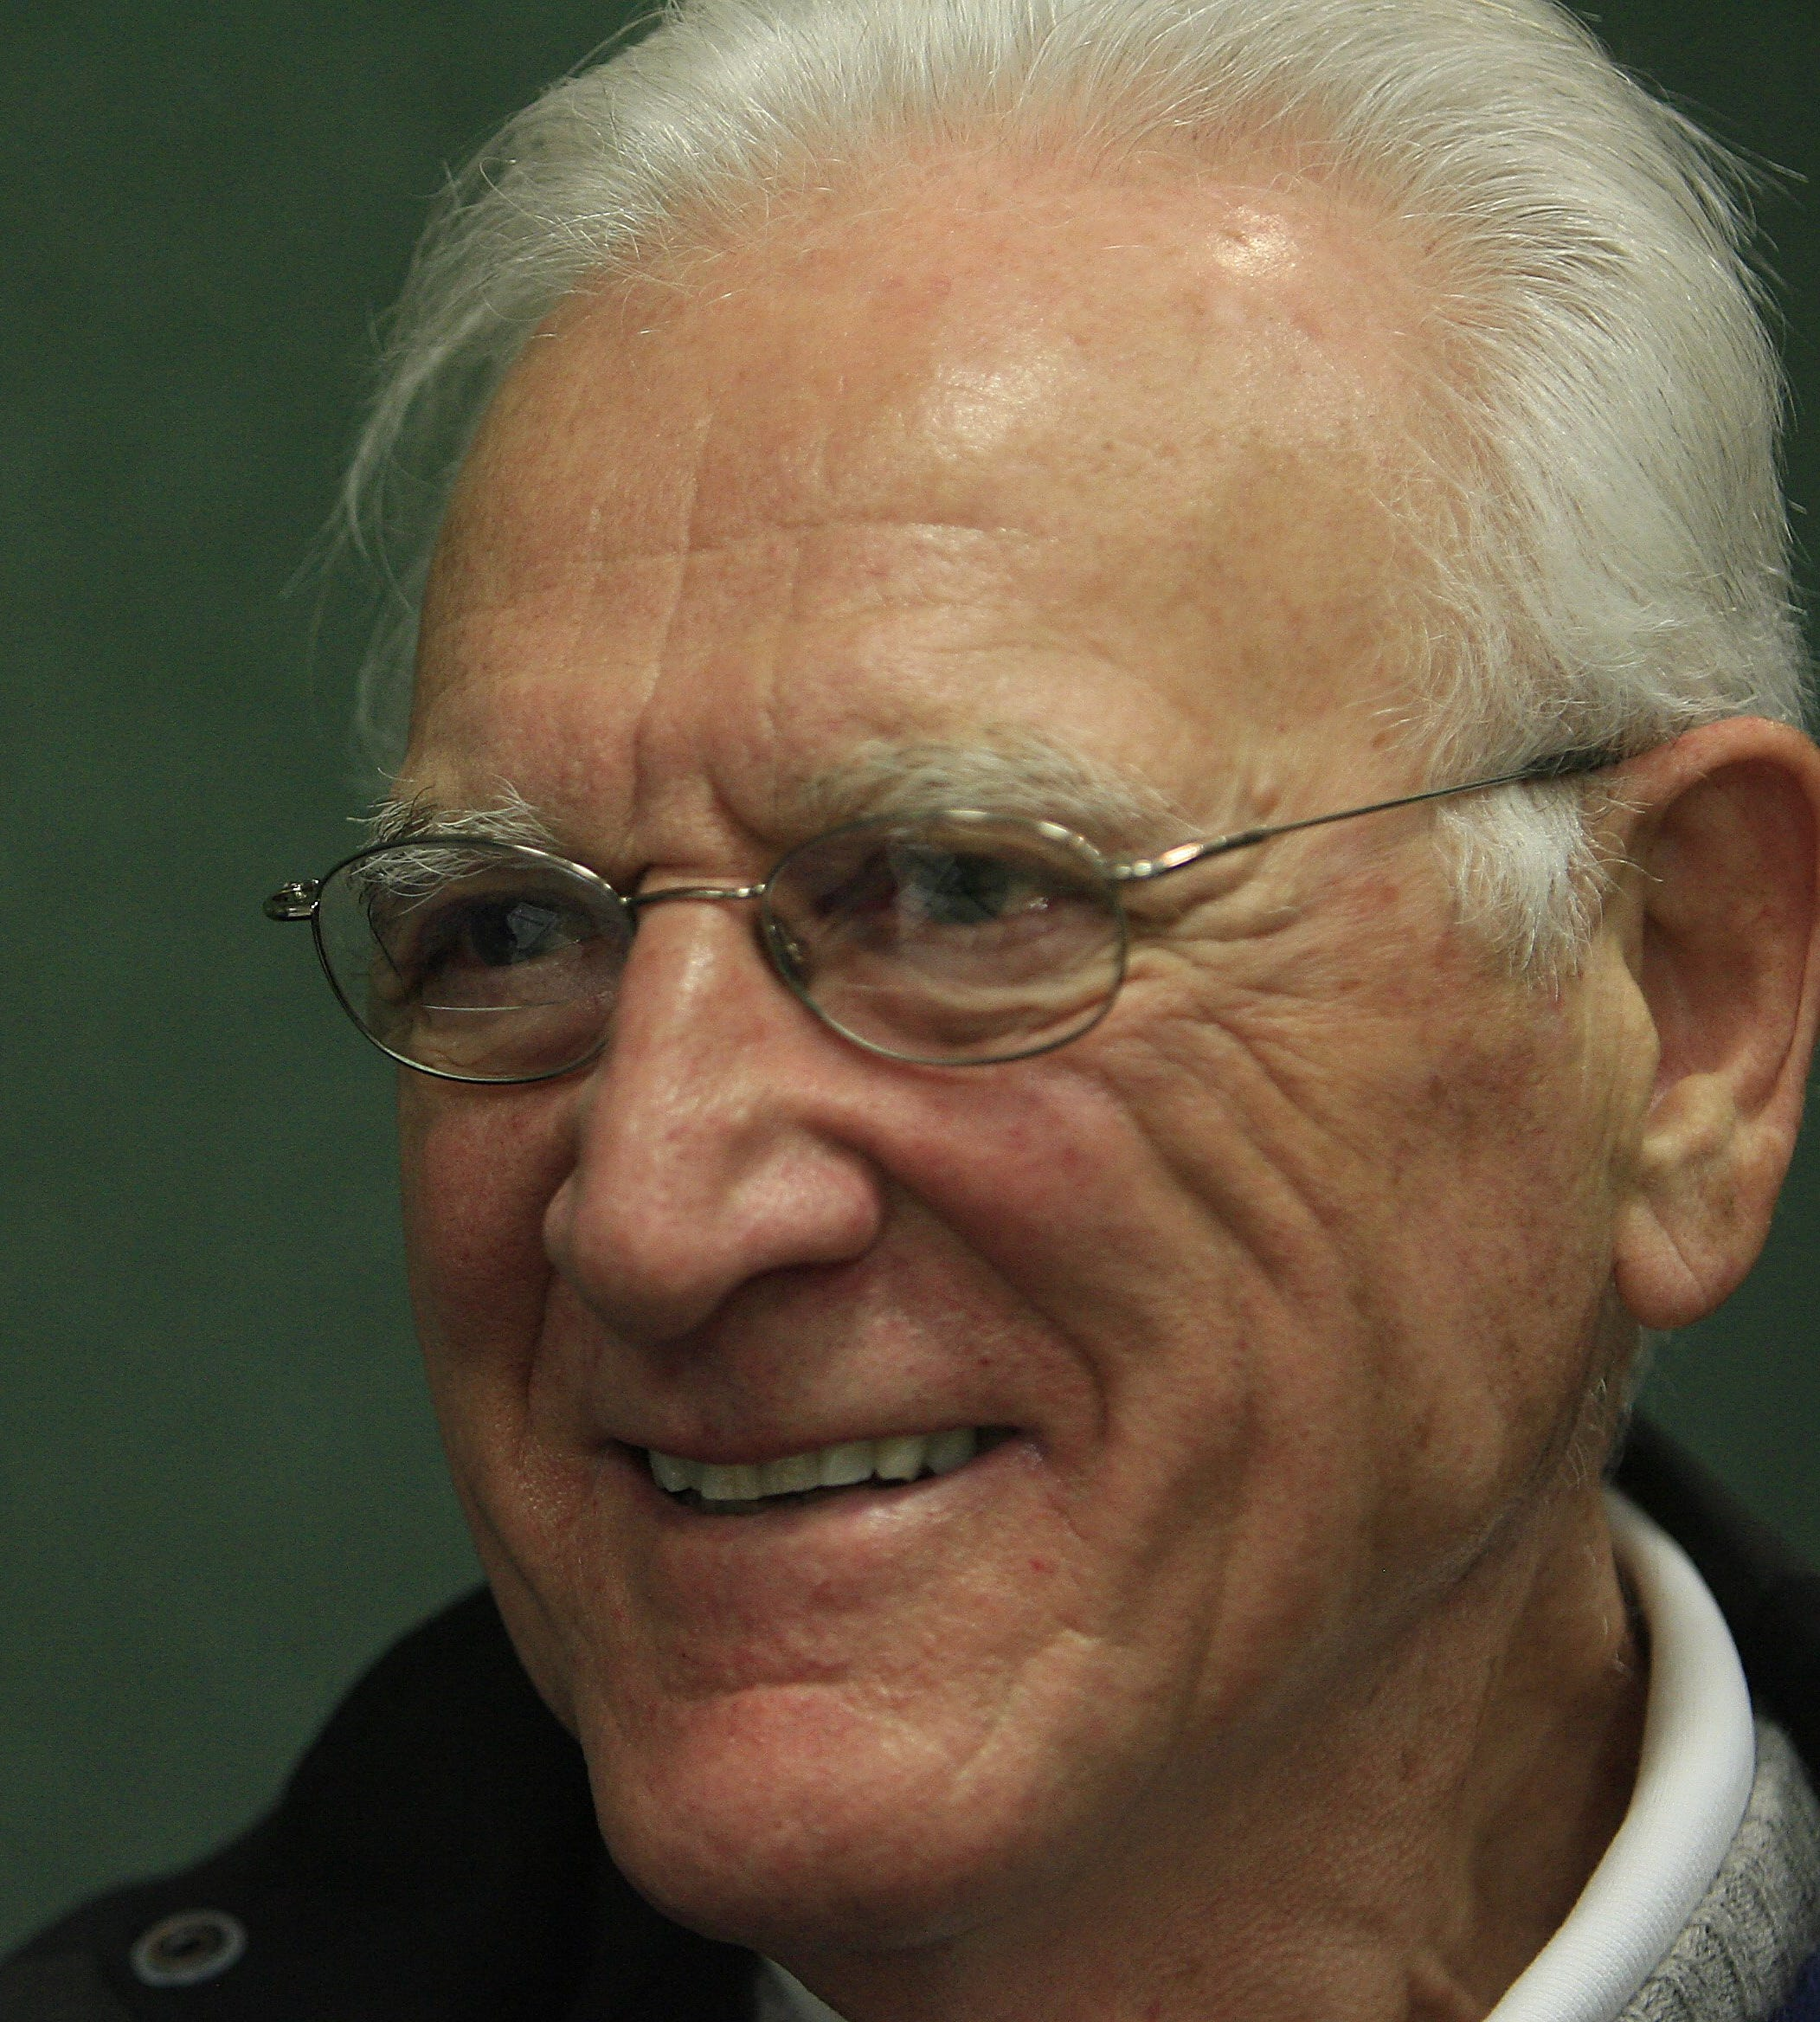 Gus Ganakas, the former Michigan State basketball coach and longtime fixture in the program, died on Jan. 11, 2019 at the age of 92.